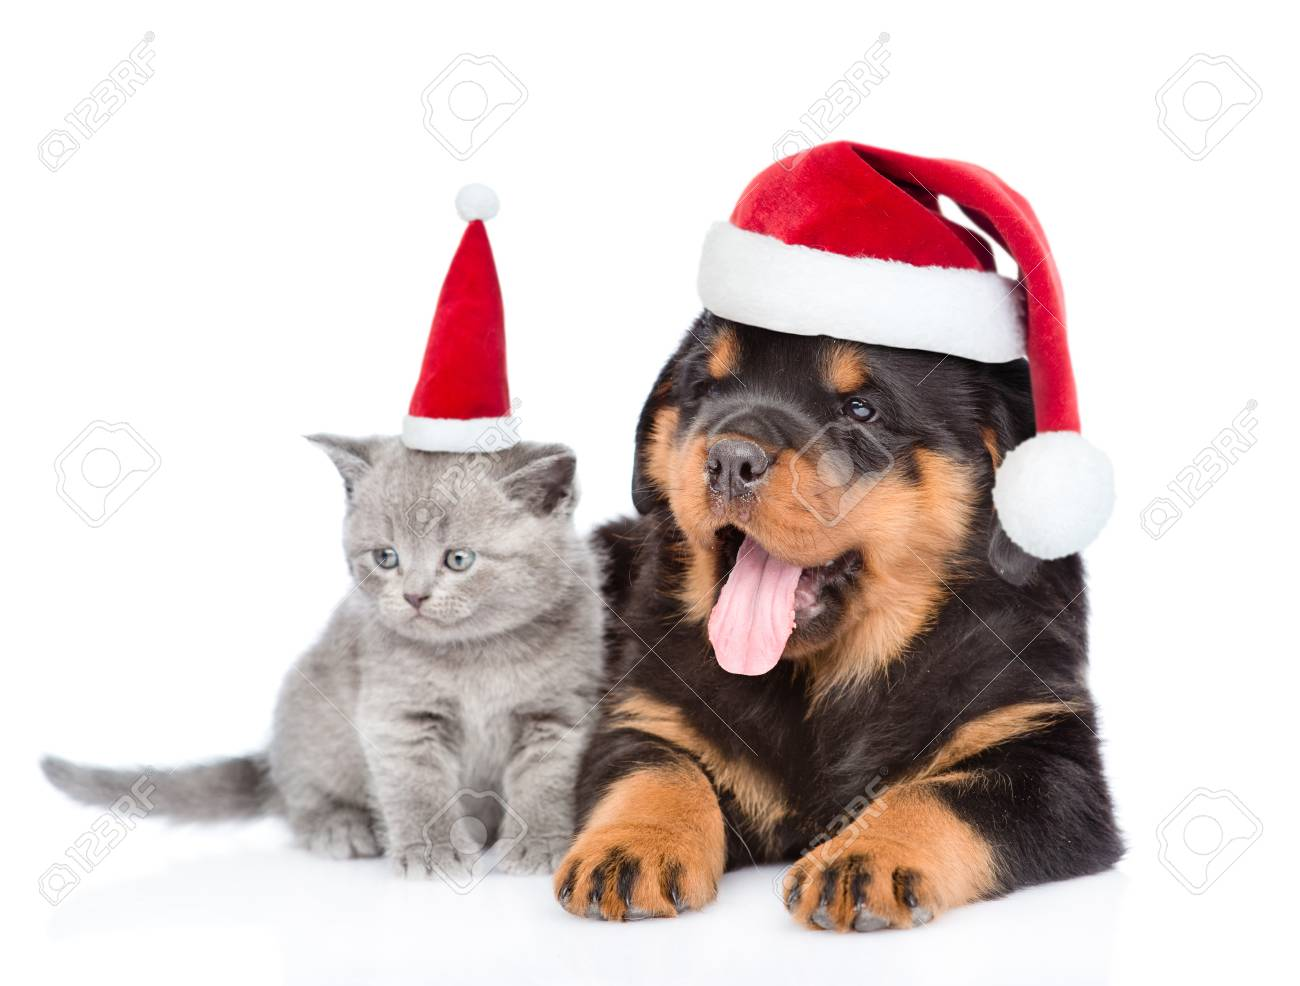 A Puppy For Christmas.Portrait Of A Scottish Kitten And Rottweiler Puppy In Red Christmas